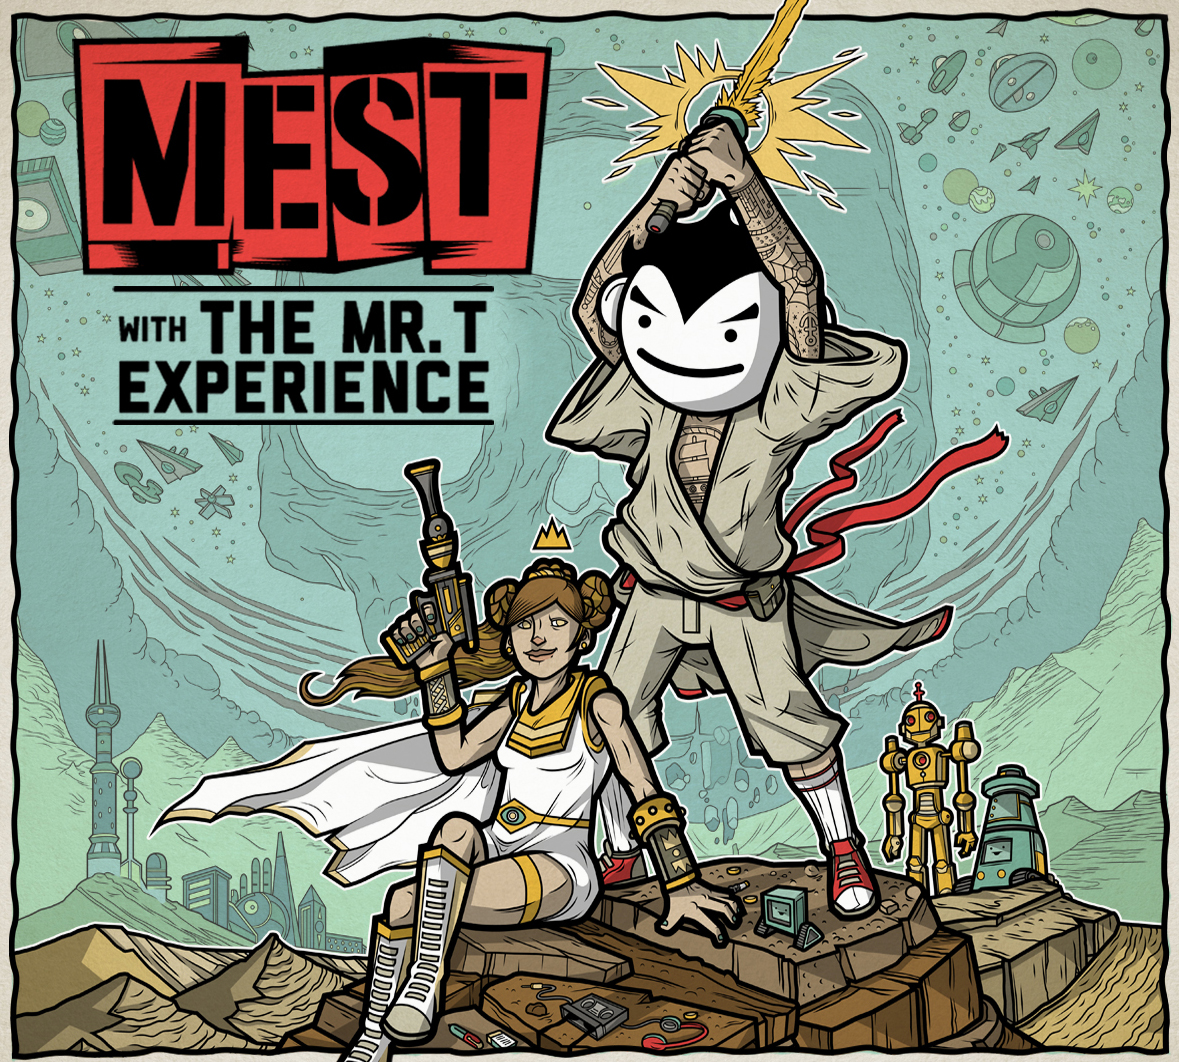 MEST * MR. T EXPERIENCE